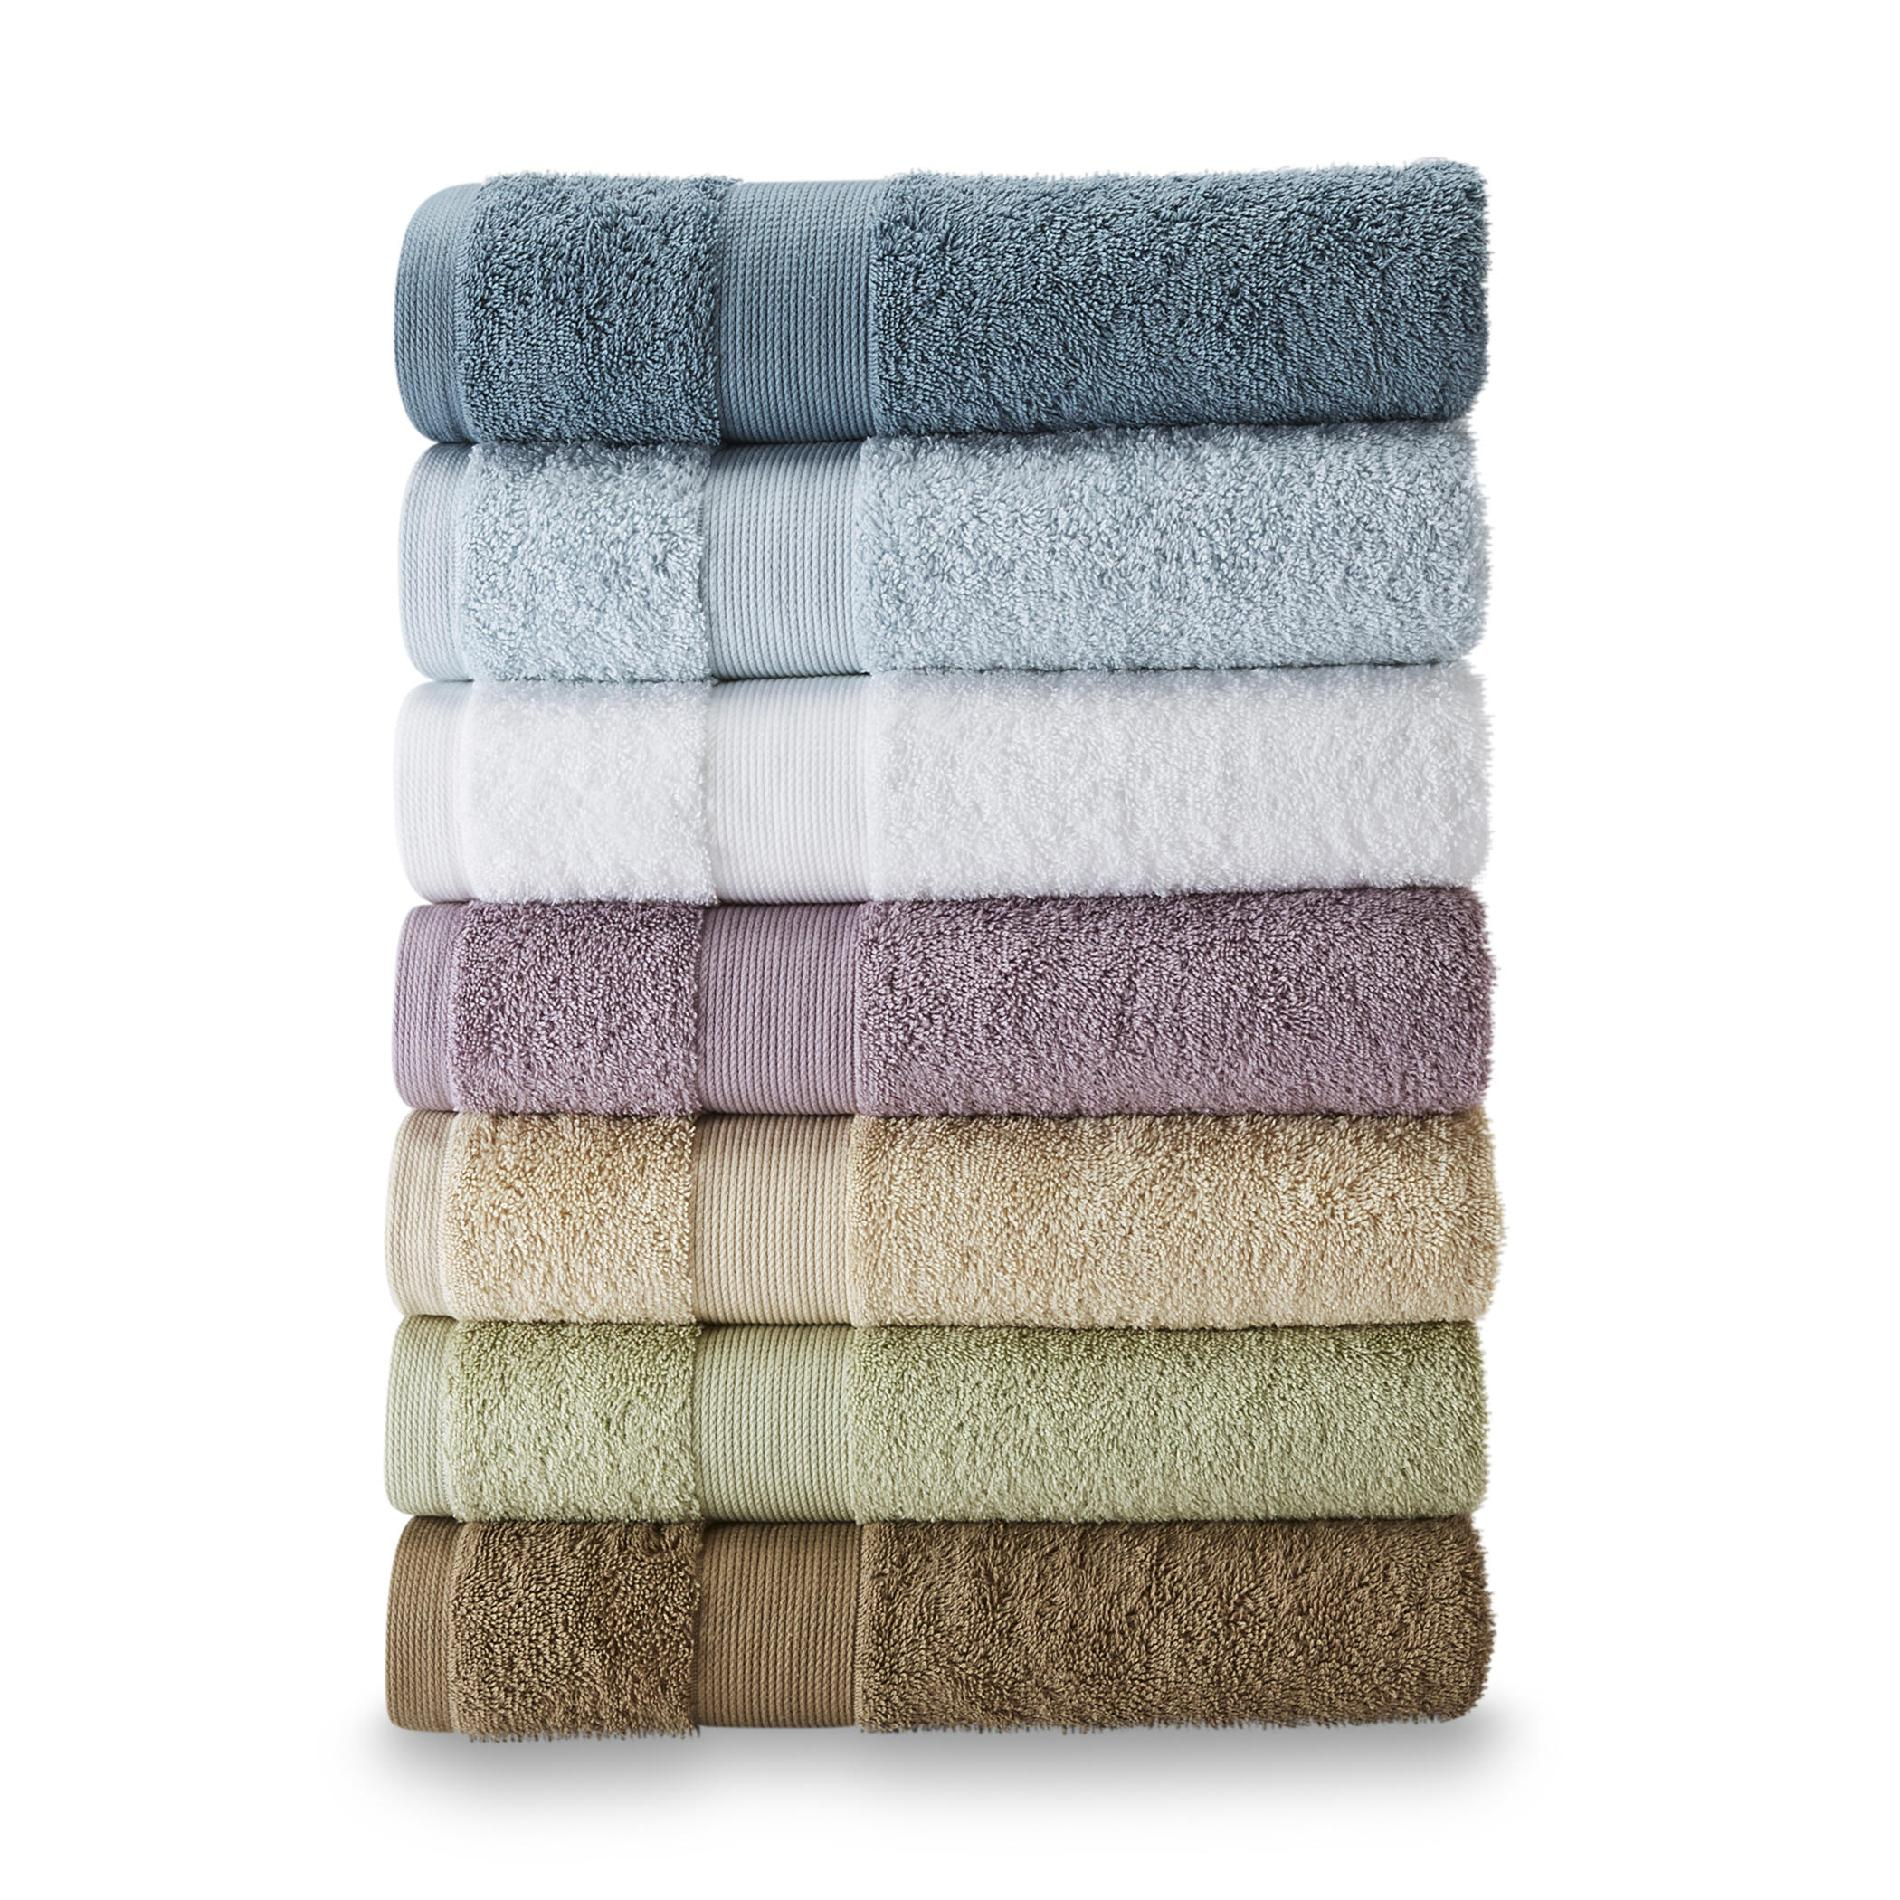 Jaclyn Smith Cotton Bath Towels Hand Washcloths In Multiple Colors